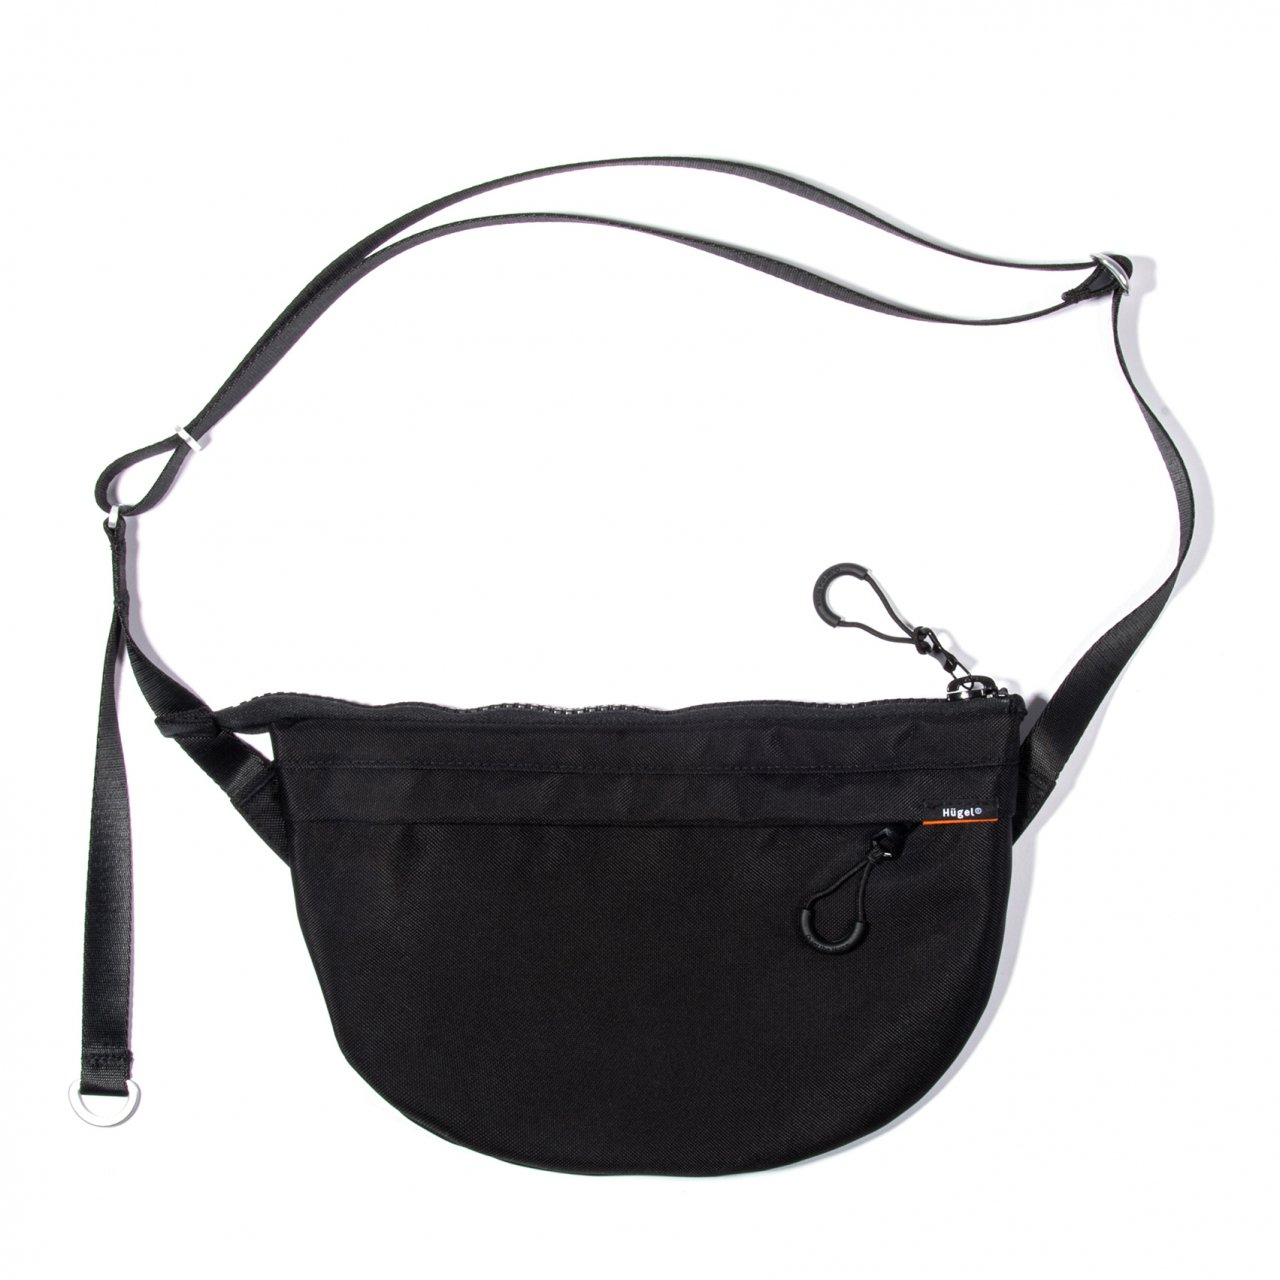 SHOULDER BAG / BLACK, KHAKI, NAVY